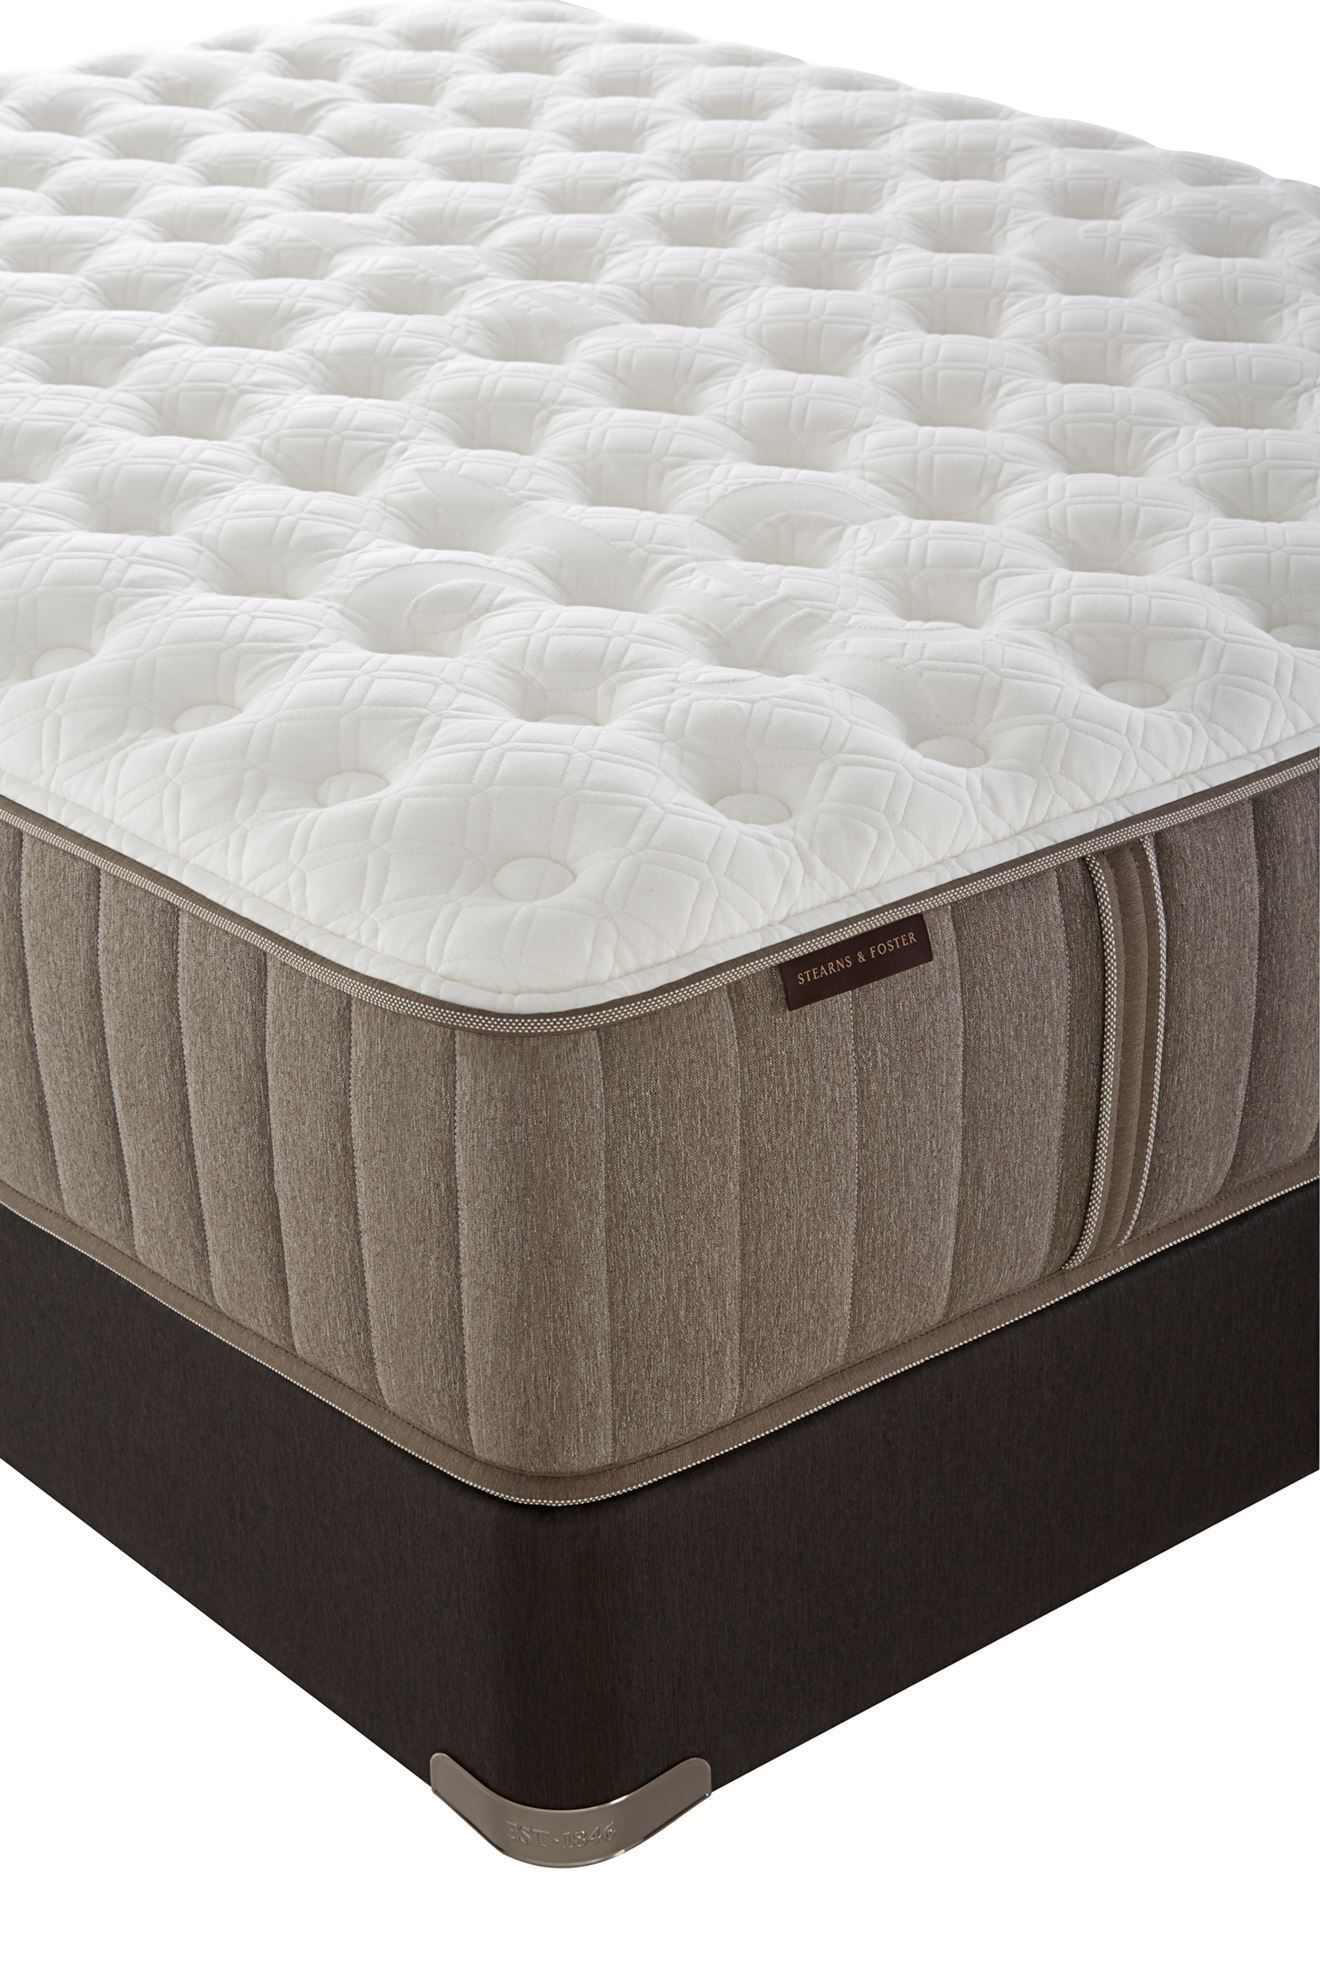 Picture of Stearns & Foster Scarborough Plush Pillowtop Split Queen Flat Foundation Set